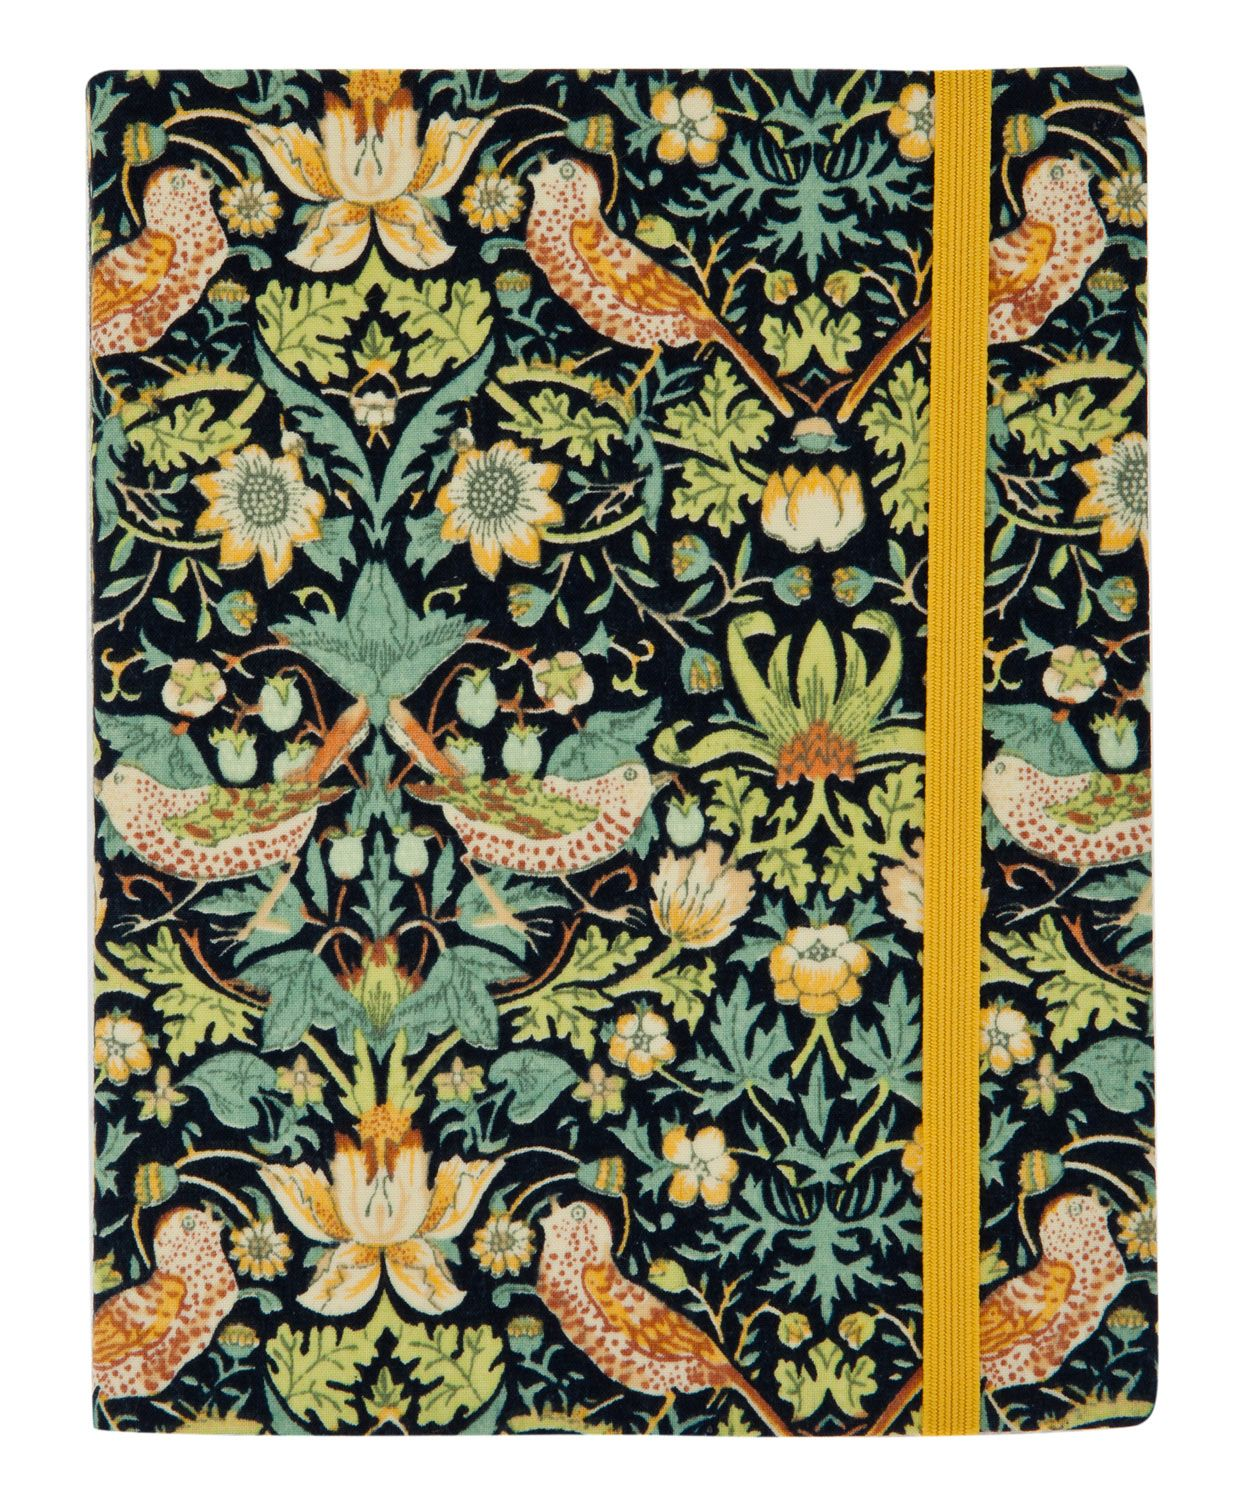 Medium Strawberry Thief Fabric Notebook Liberty London Shop More